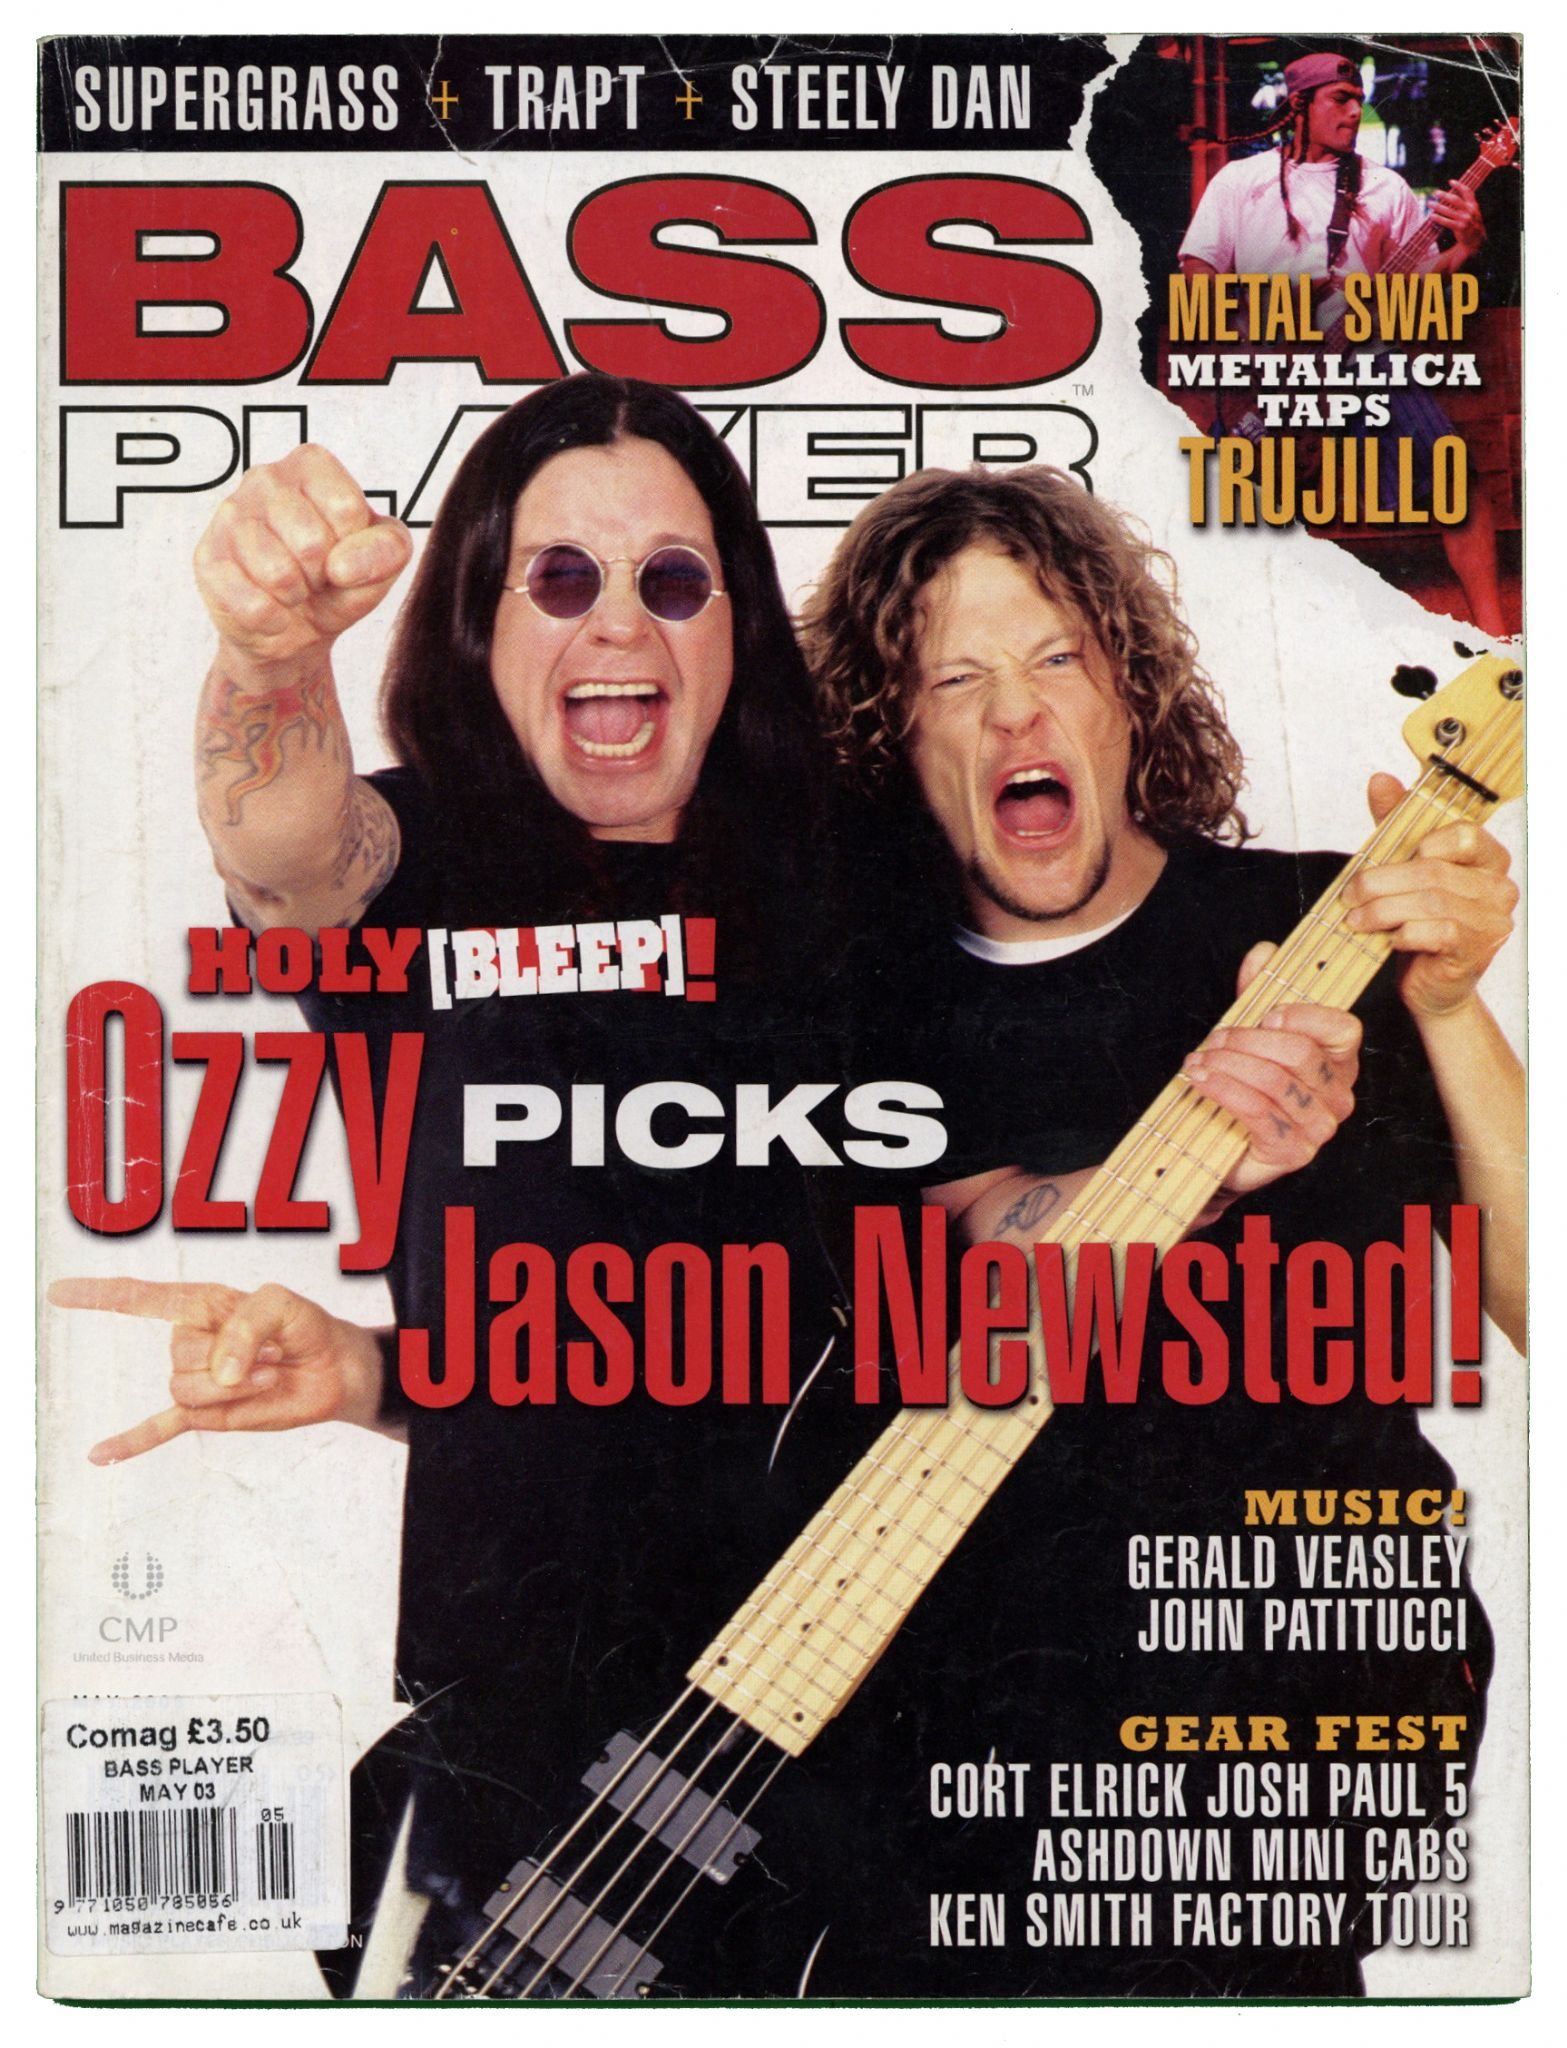 Bass Player Magazine May 2003 Supergrass Steely Dan Trapt